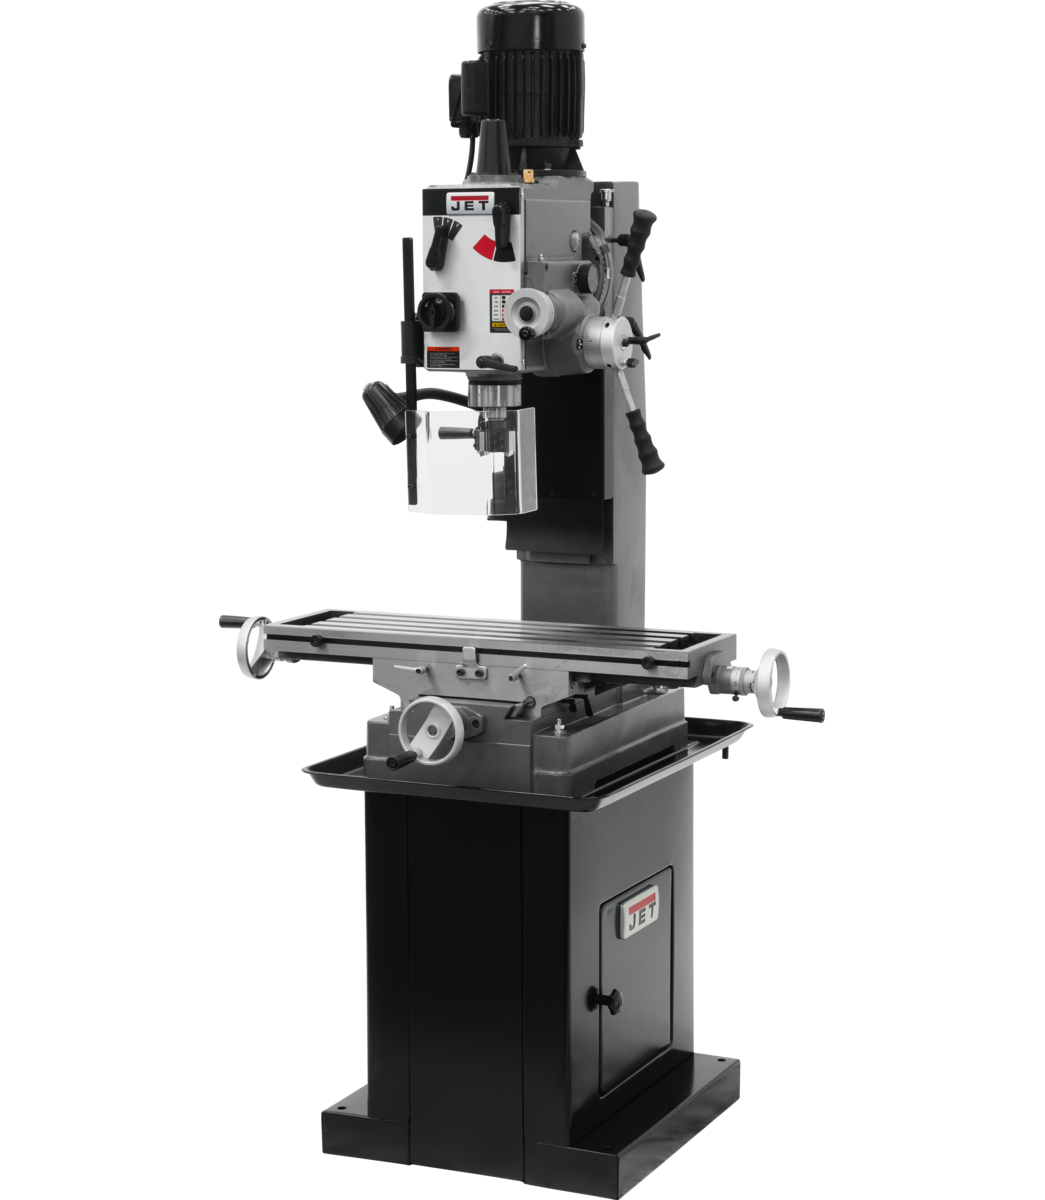 JMD-45GHPF Geared Head Square Column Mill/Drill with Power Downfeed with DP500 2-Axis DRO & X-Axis P